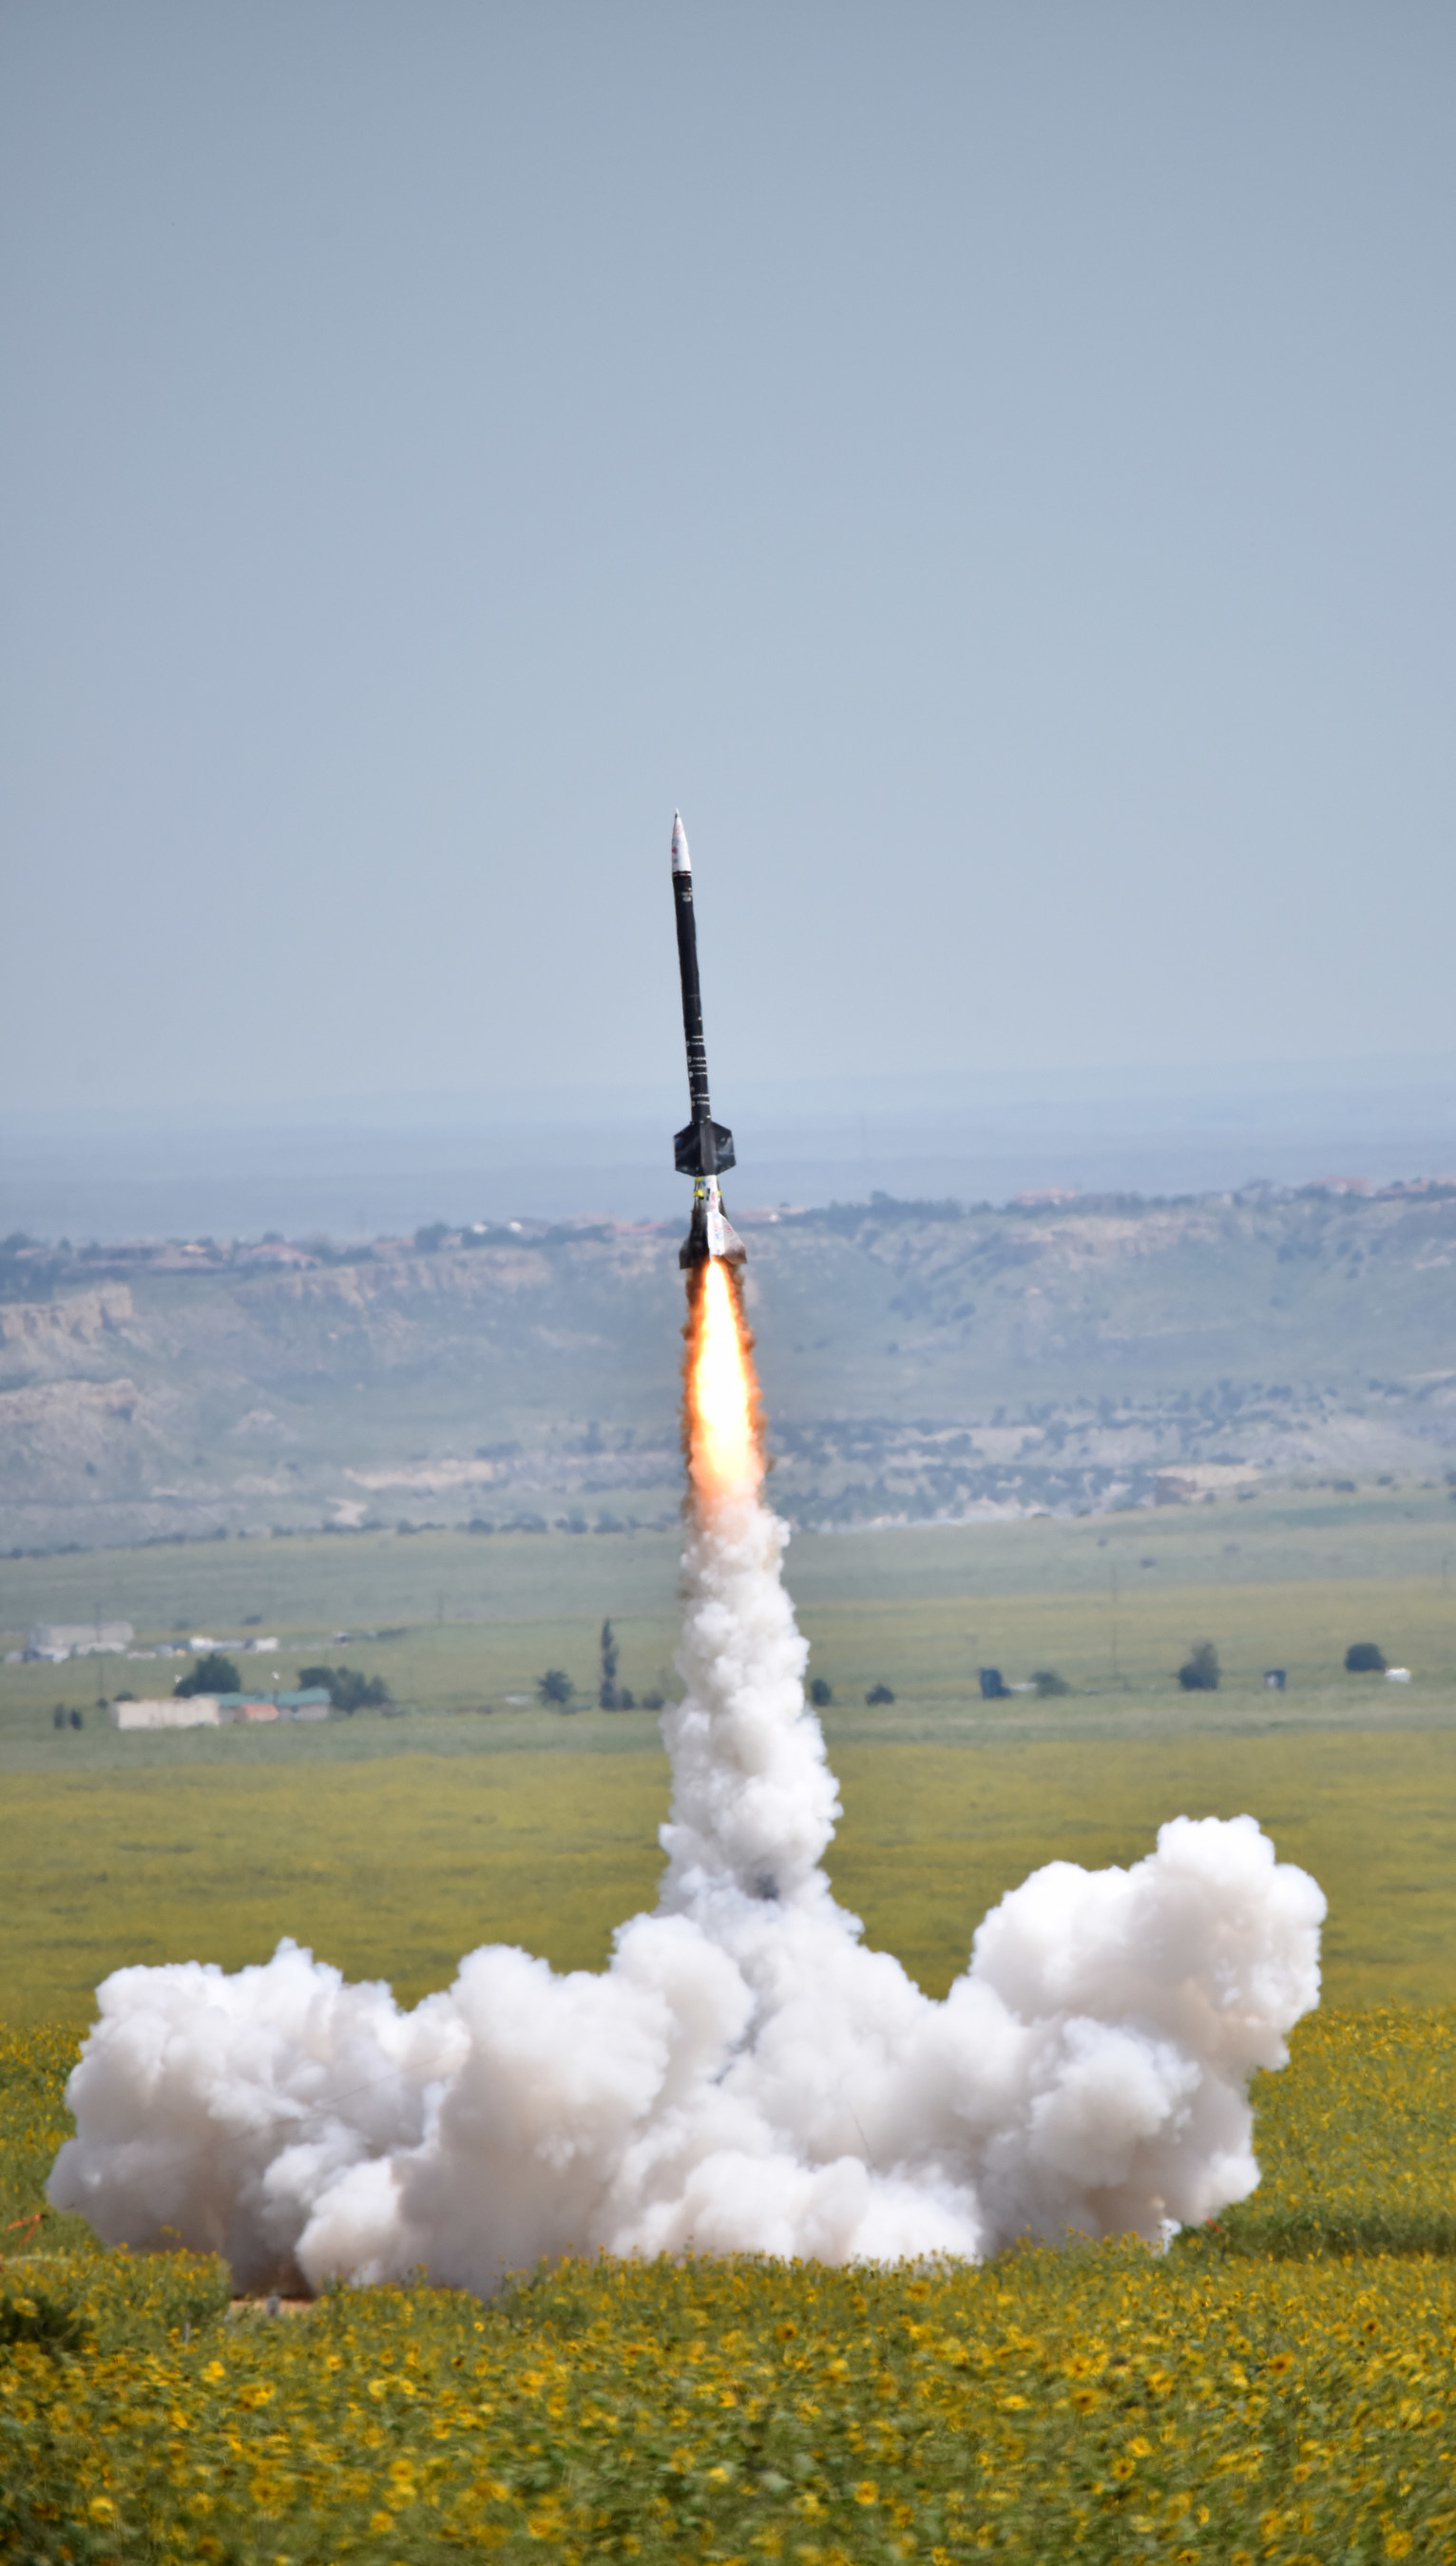 United Launch Alliance and Ball Aerospace 2015 Student Rocket Launch Takes STEM Education to New Heights